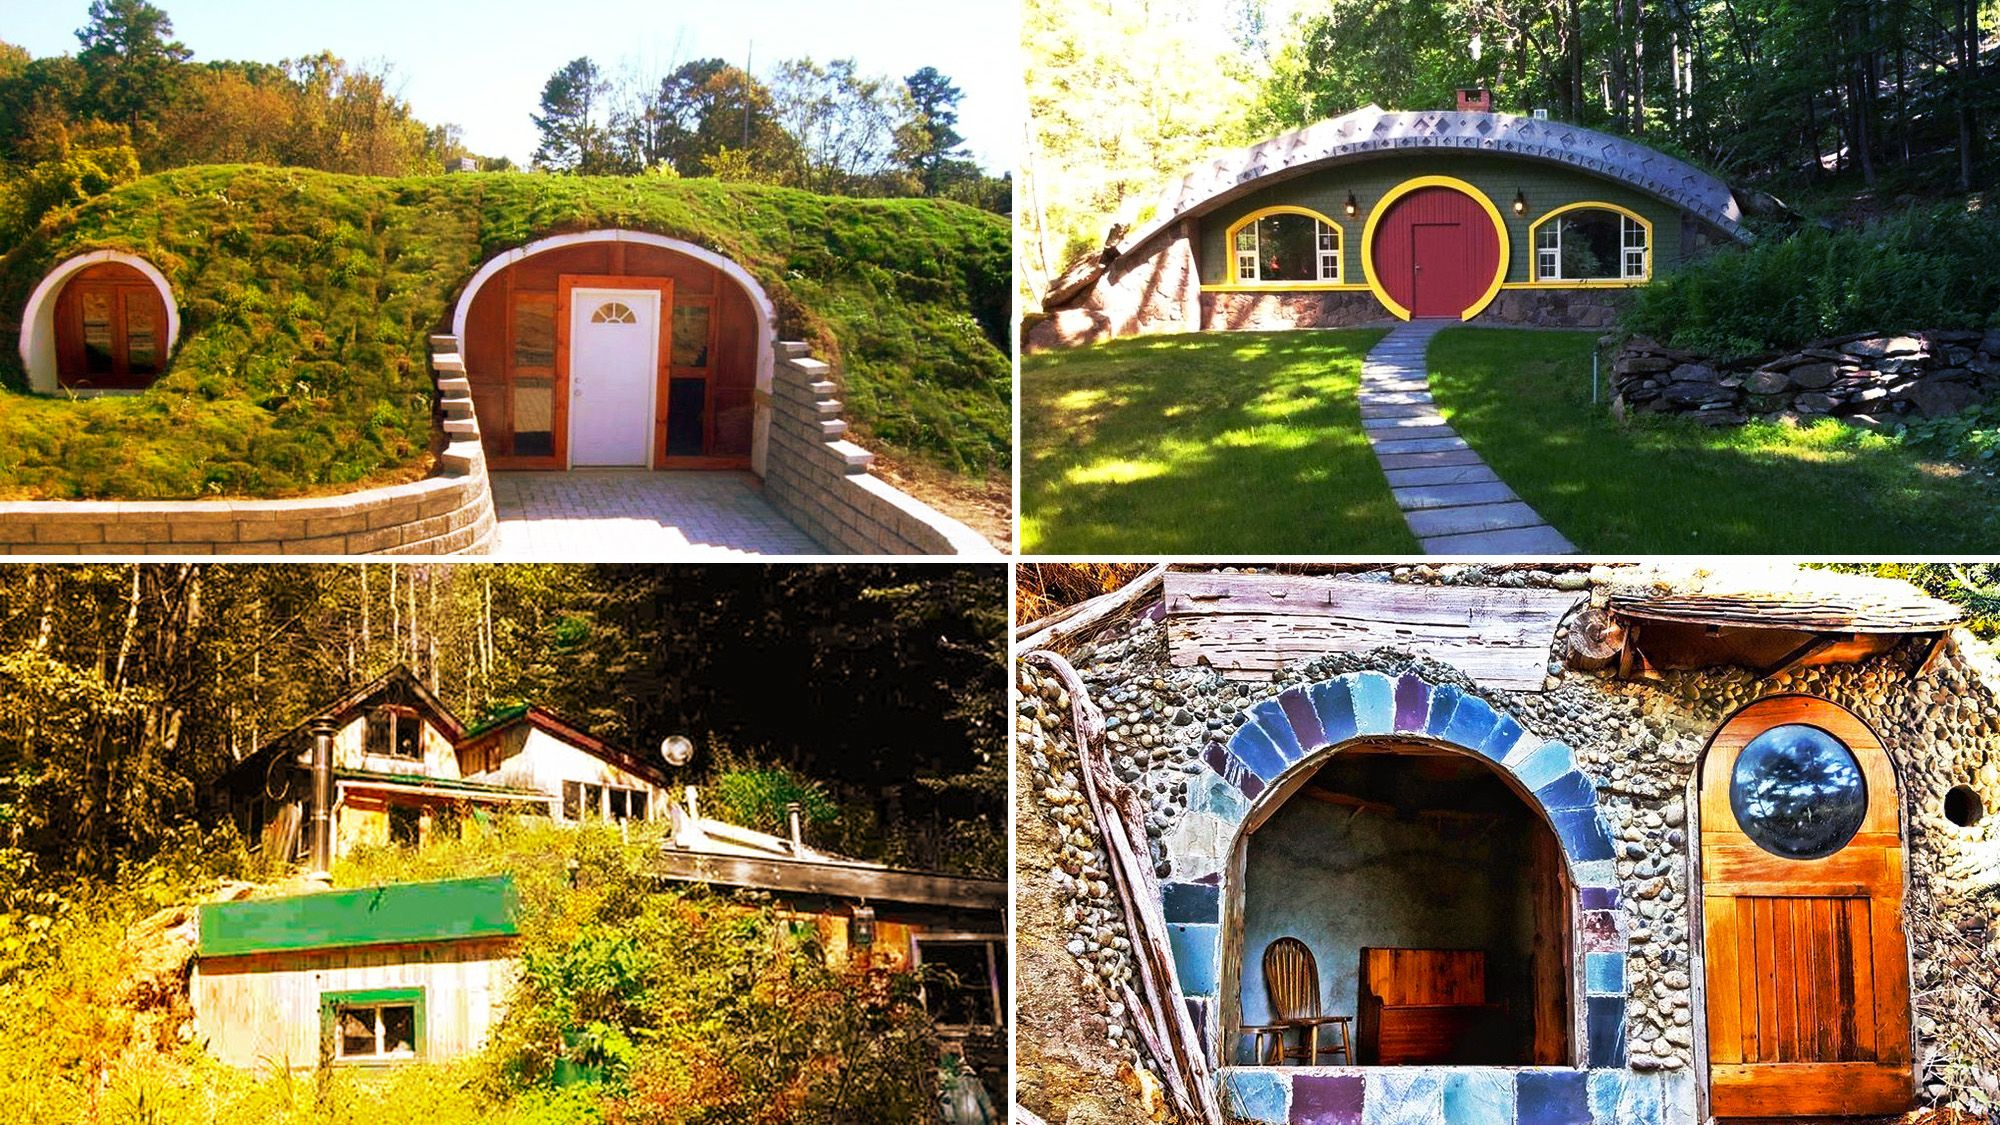 Hobbit Houses For Sale 7 Listings So Precious Bilbo Baggins Would Approve Hobbit House Hobbit House For Sale The Hobbit